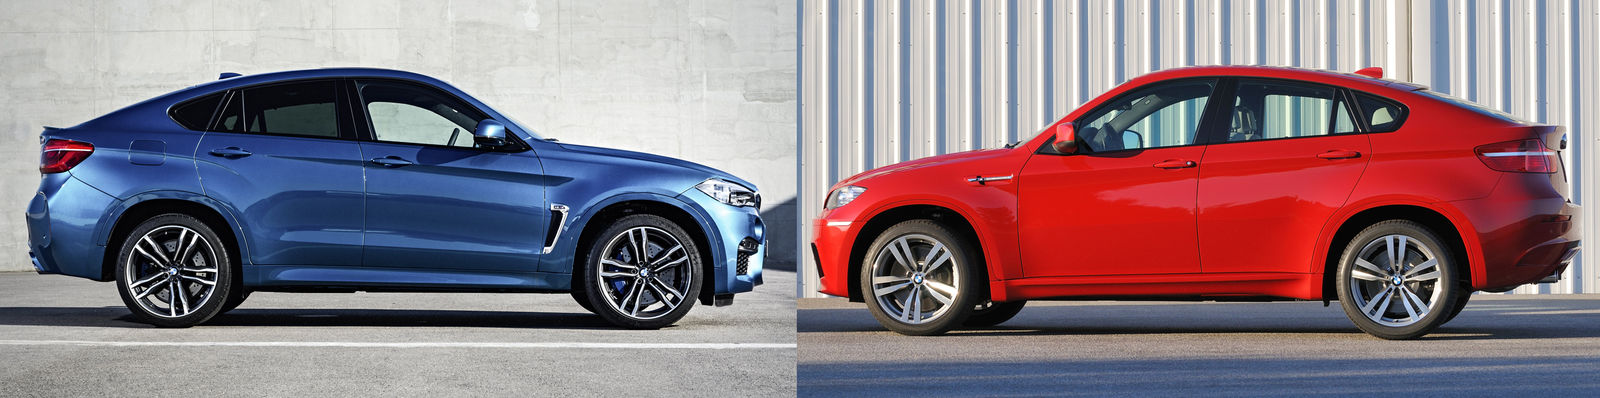 2015 bmw x6 m old vs new compared carwow. Black Bedroom Furniture Sets. Home Design Ideas